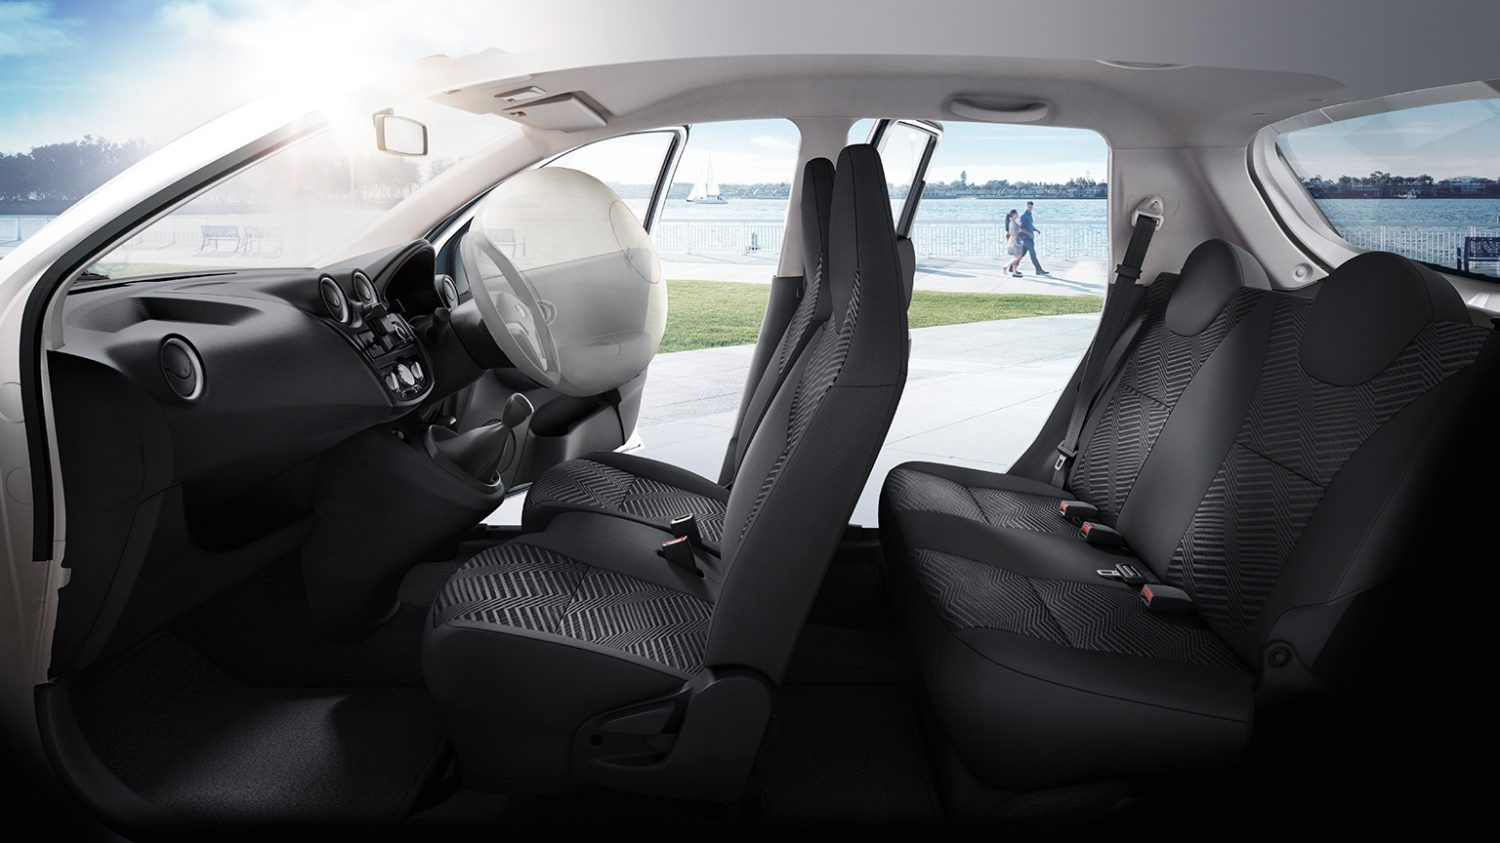 Datsun Go: Drivers Airbag